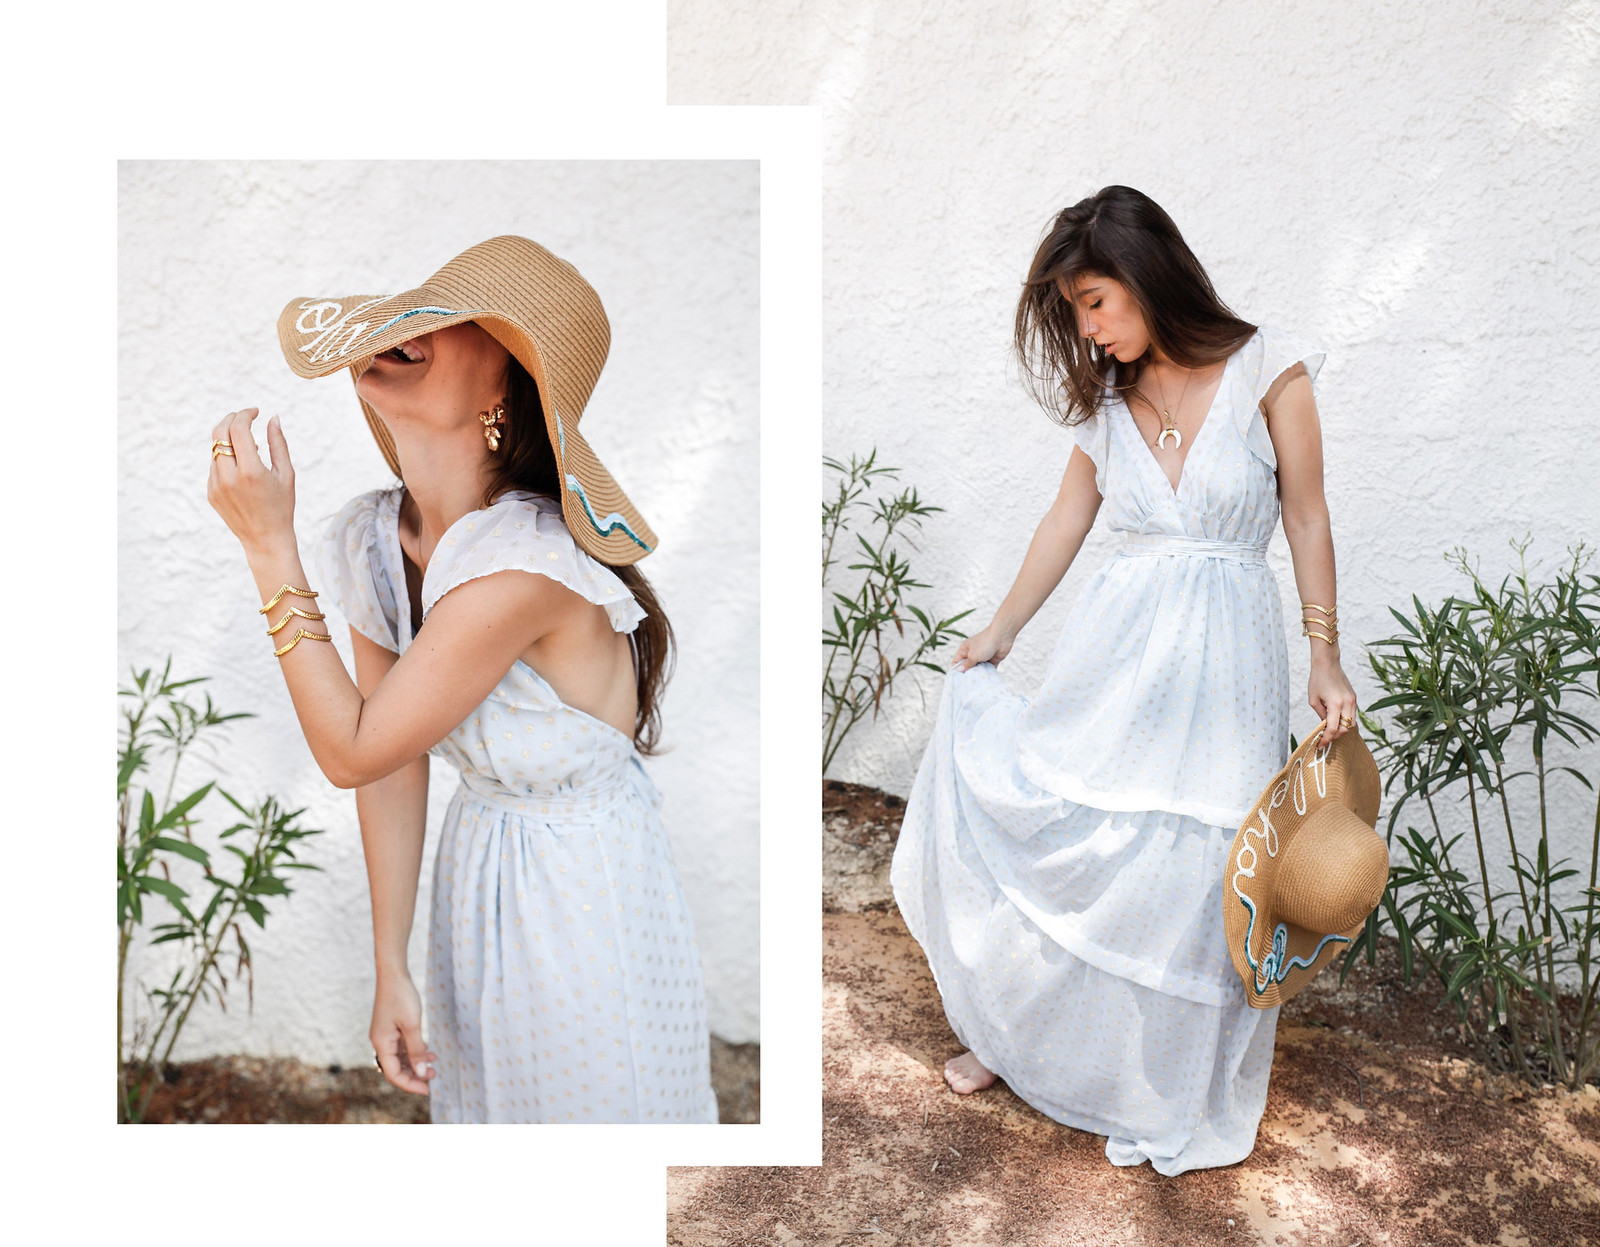 015_golden_dots_lunares_dorados_vestido_azul_boho_deby_debo_long_dress_theguestgirl_influencer_barcelona_style_content_creator_fashion_spain